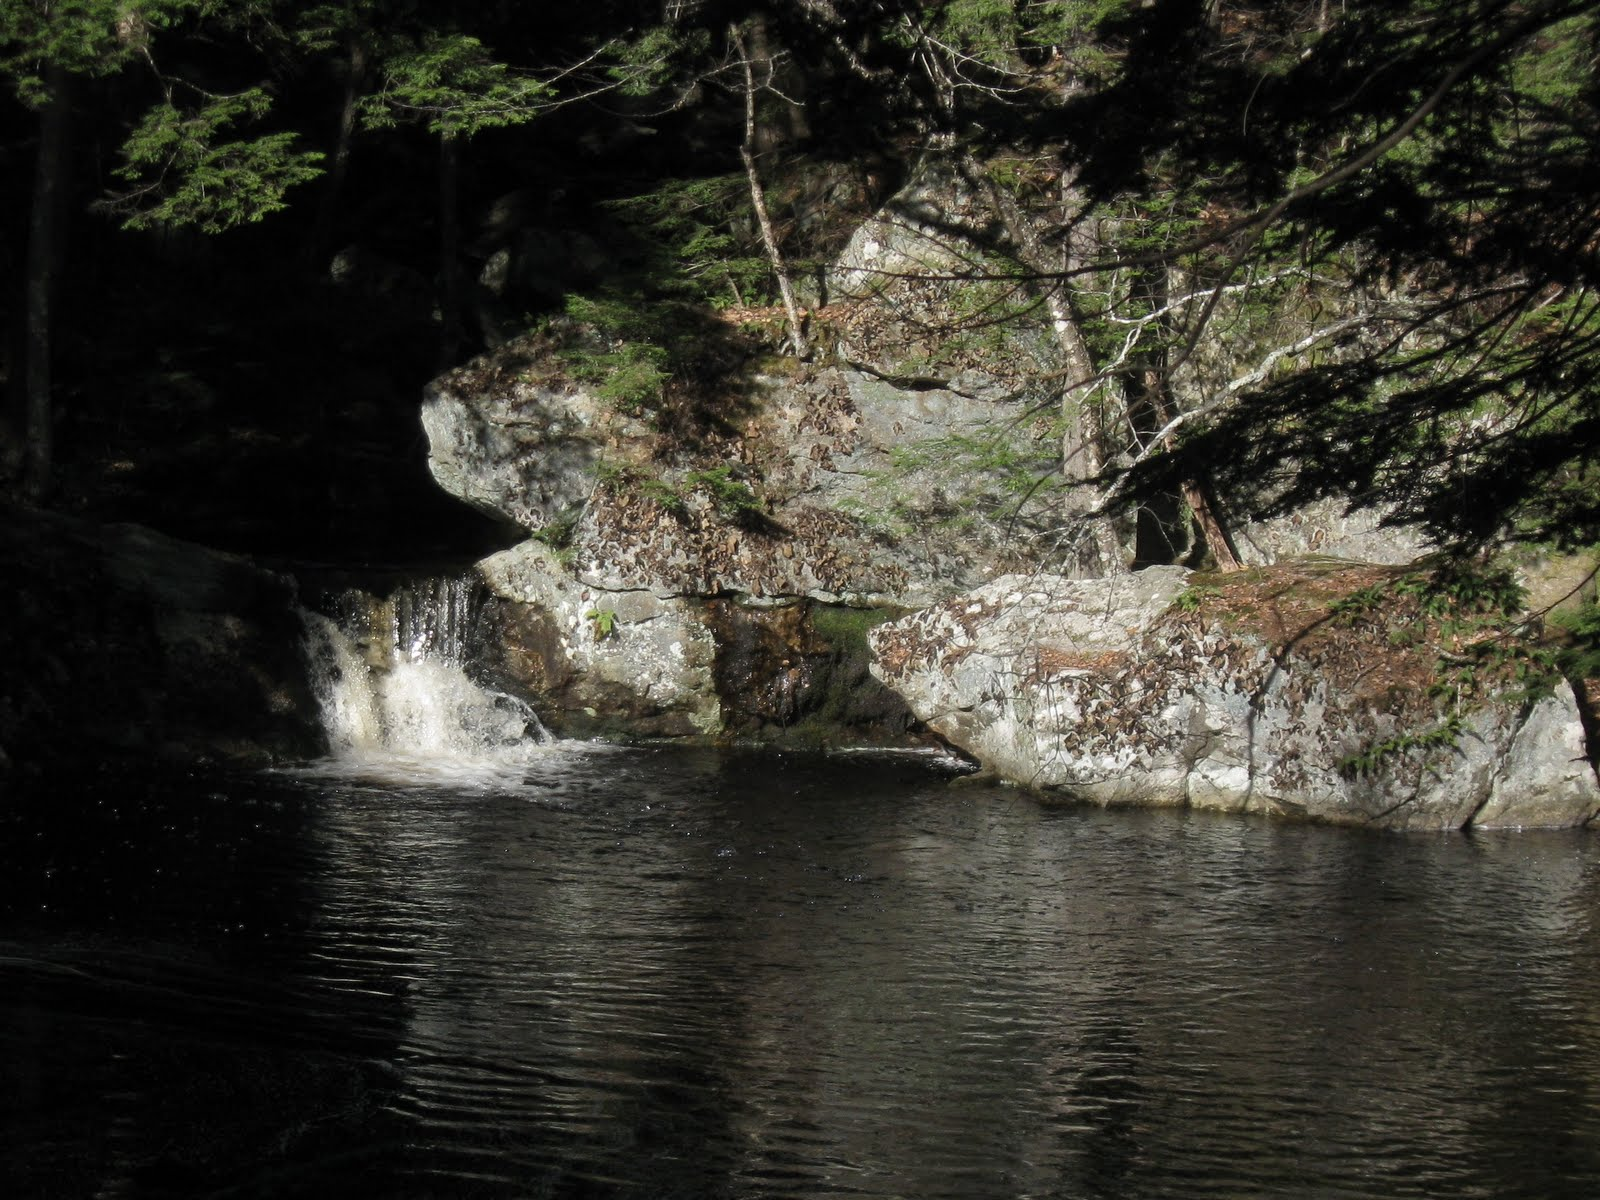 Birding north central massachusetts tully trail epic - Tully swimming pool opening hours ...